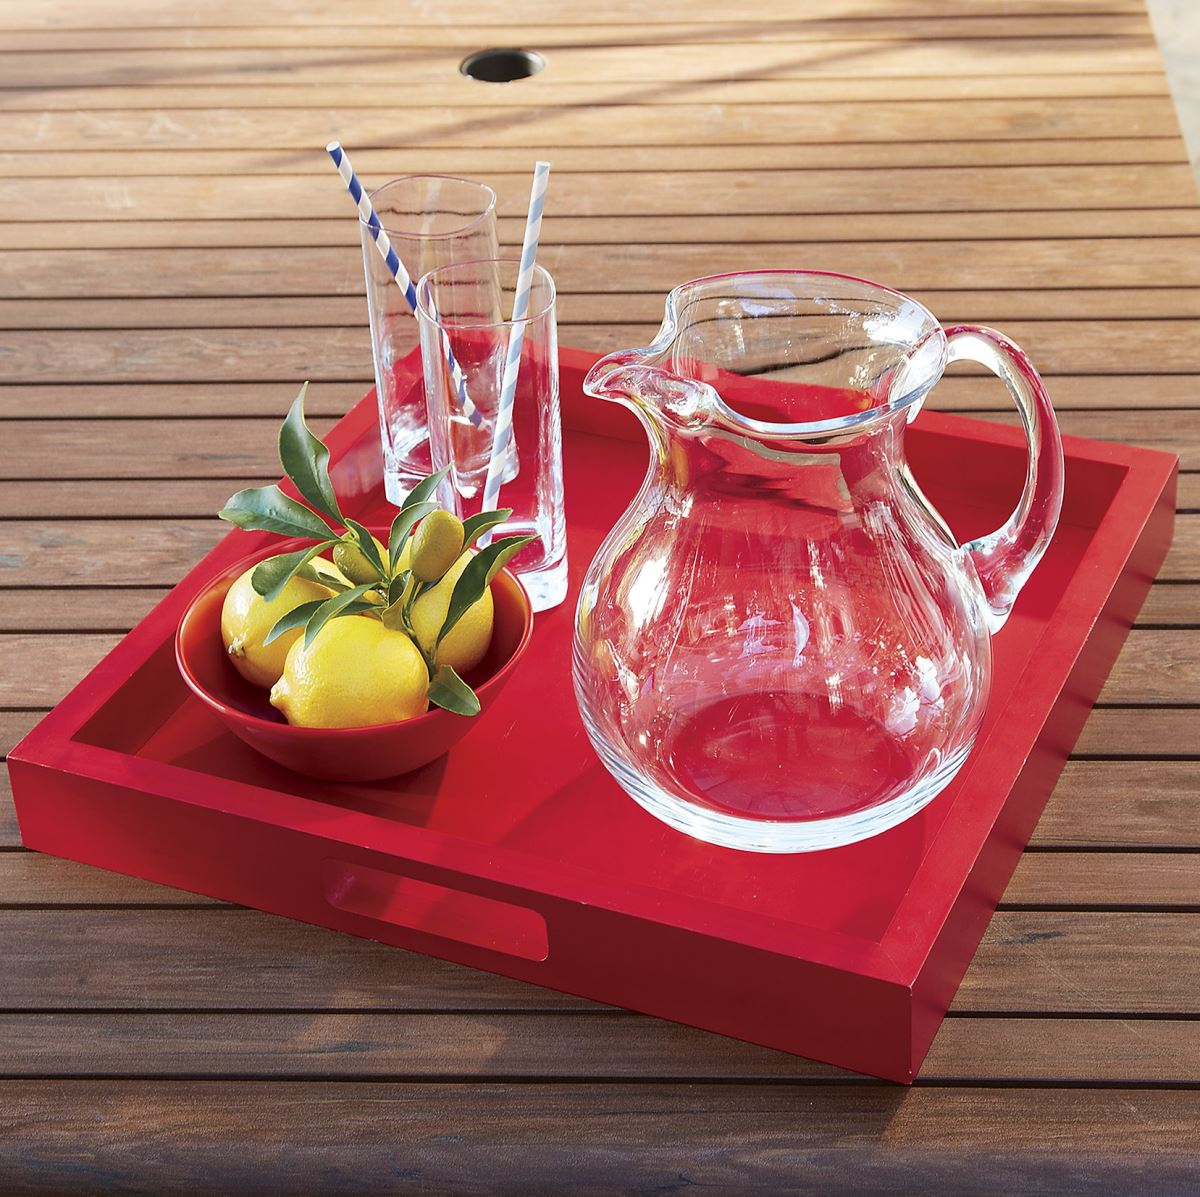 Wooden serving tray from Crate & Barrel